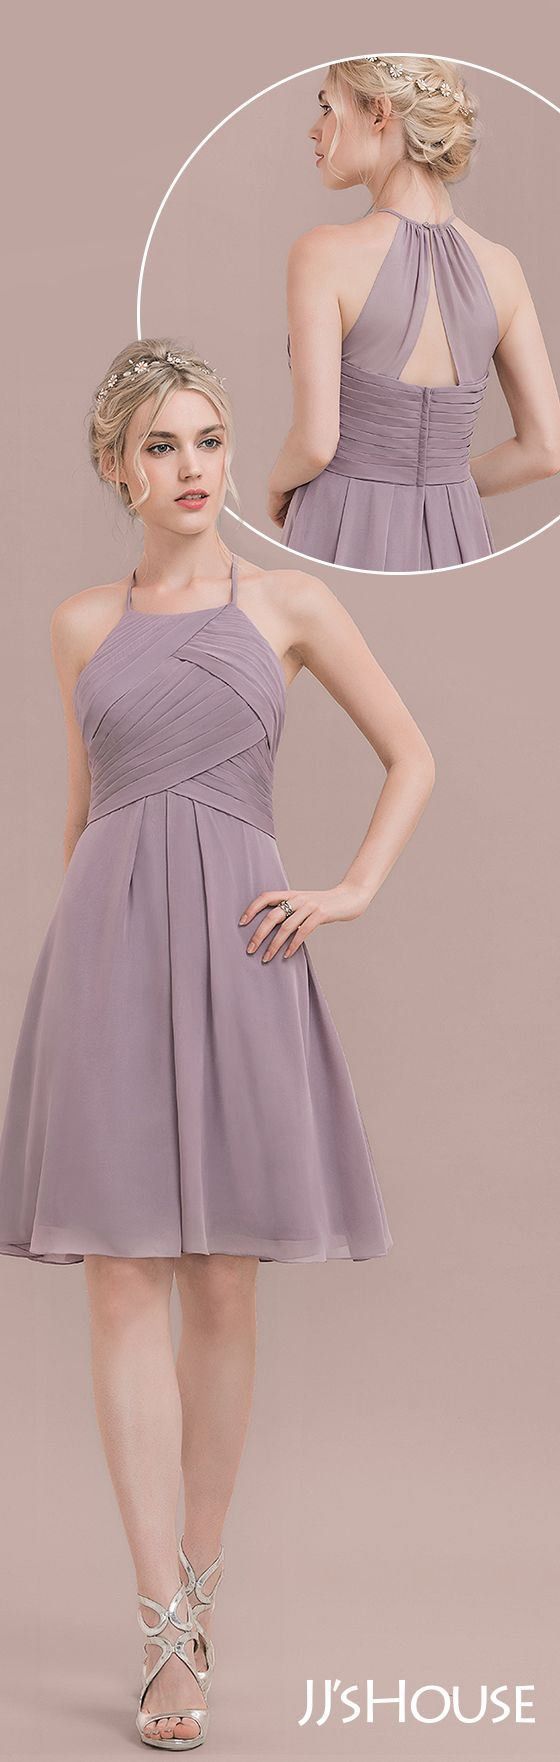 US$88.49 (Was US$199.99) | JJsHouse, as the global leading online retailer, provides a large variety of wedding dresses, wedding party dresses, special occasion dresses, fashion dresses, shoes & accessories of high quality & affordable price. All dresses are made to order. Pick yours today!